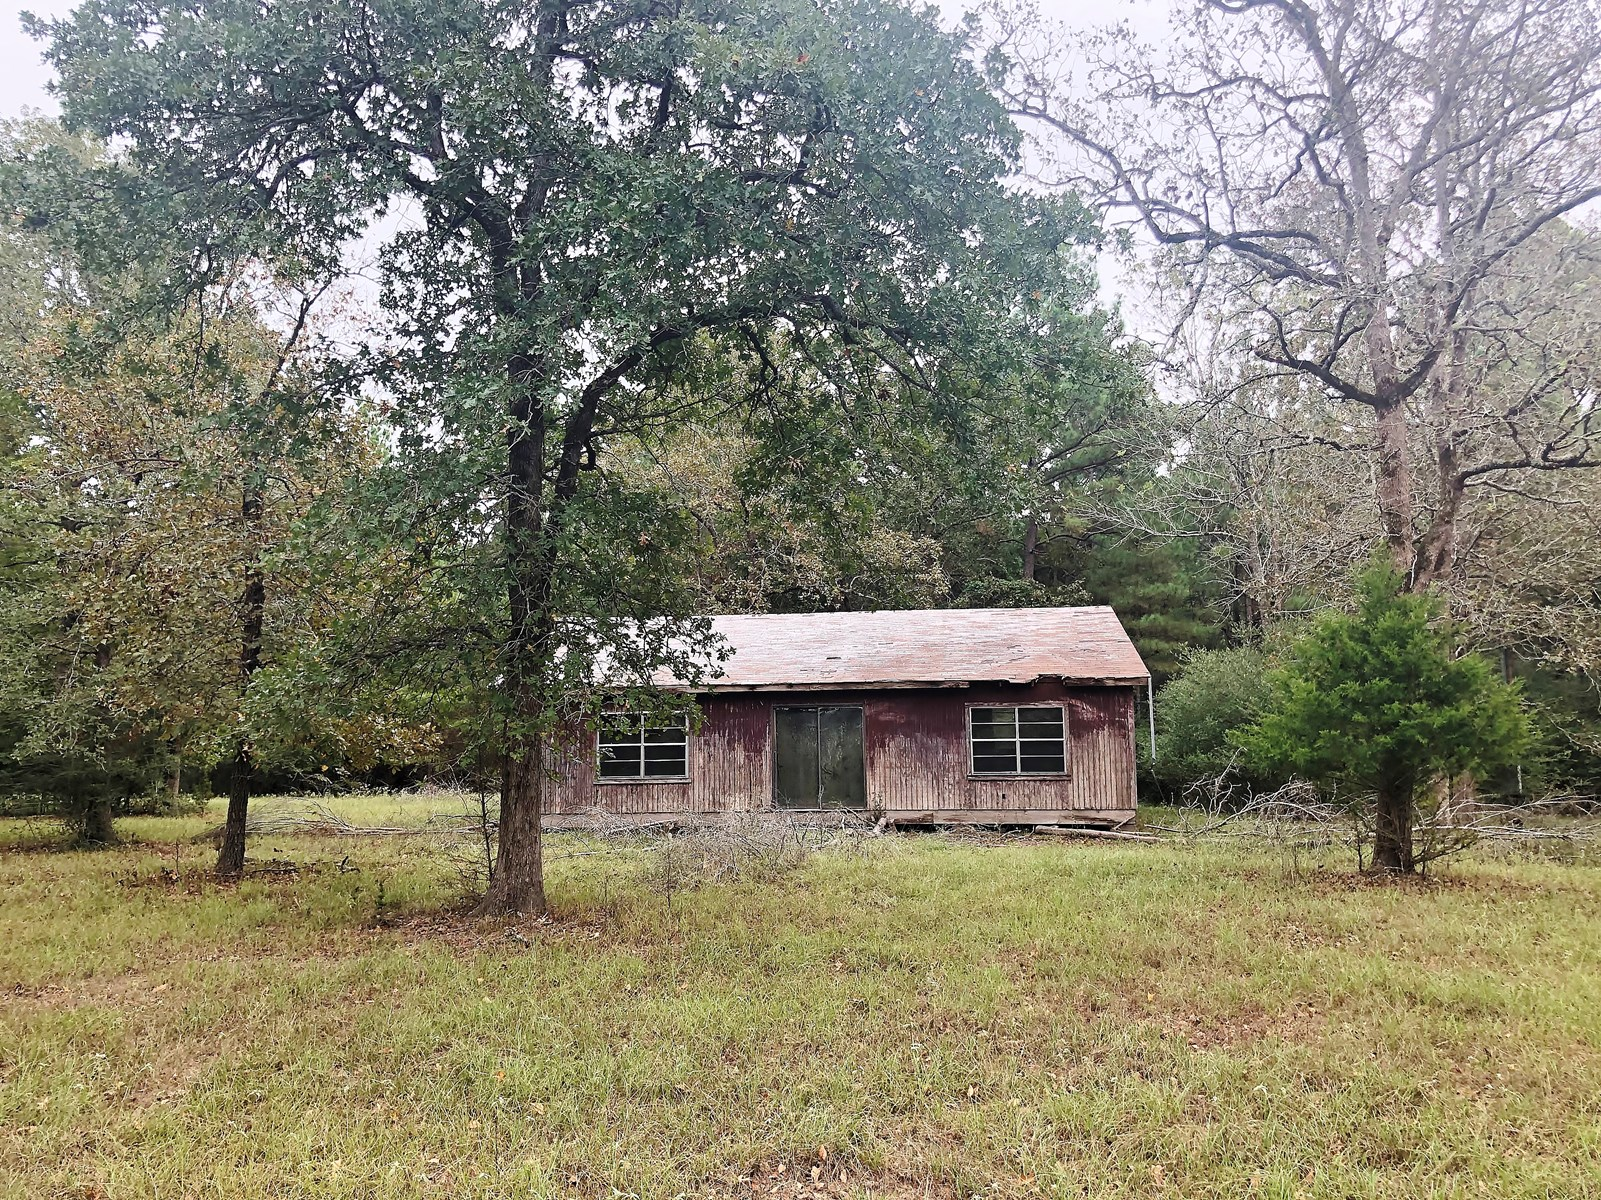 Wooded Acreage For Sale in Centerville, TX - 6.74 Acres